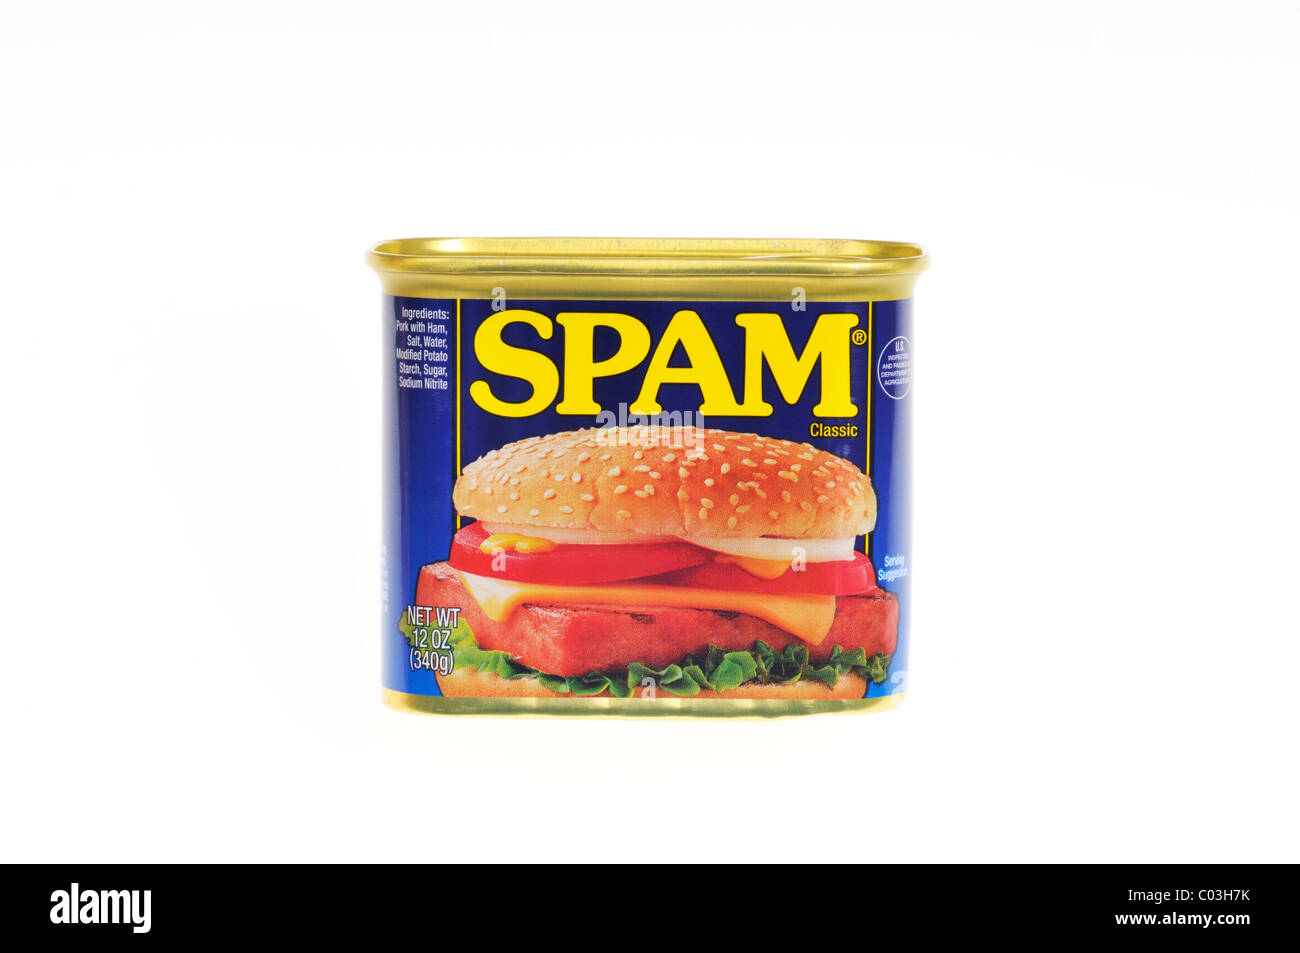 Unopened tin can of Hormel Foods meat product Spam on white background, isolated. USA - Stock Image